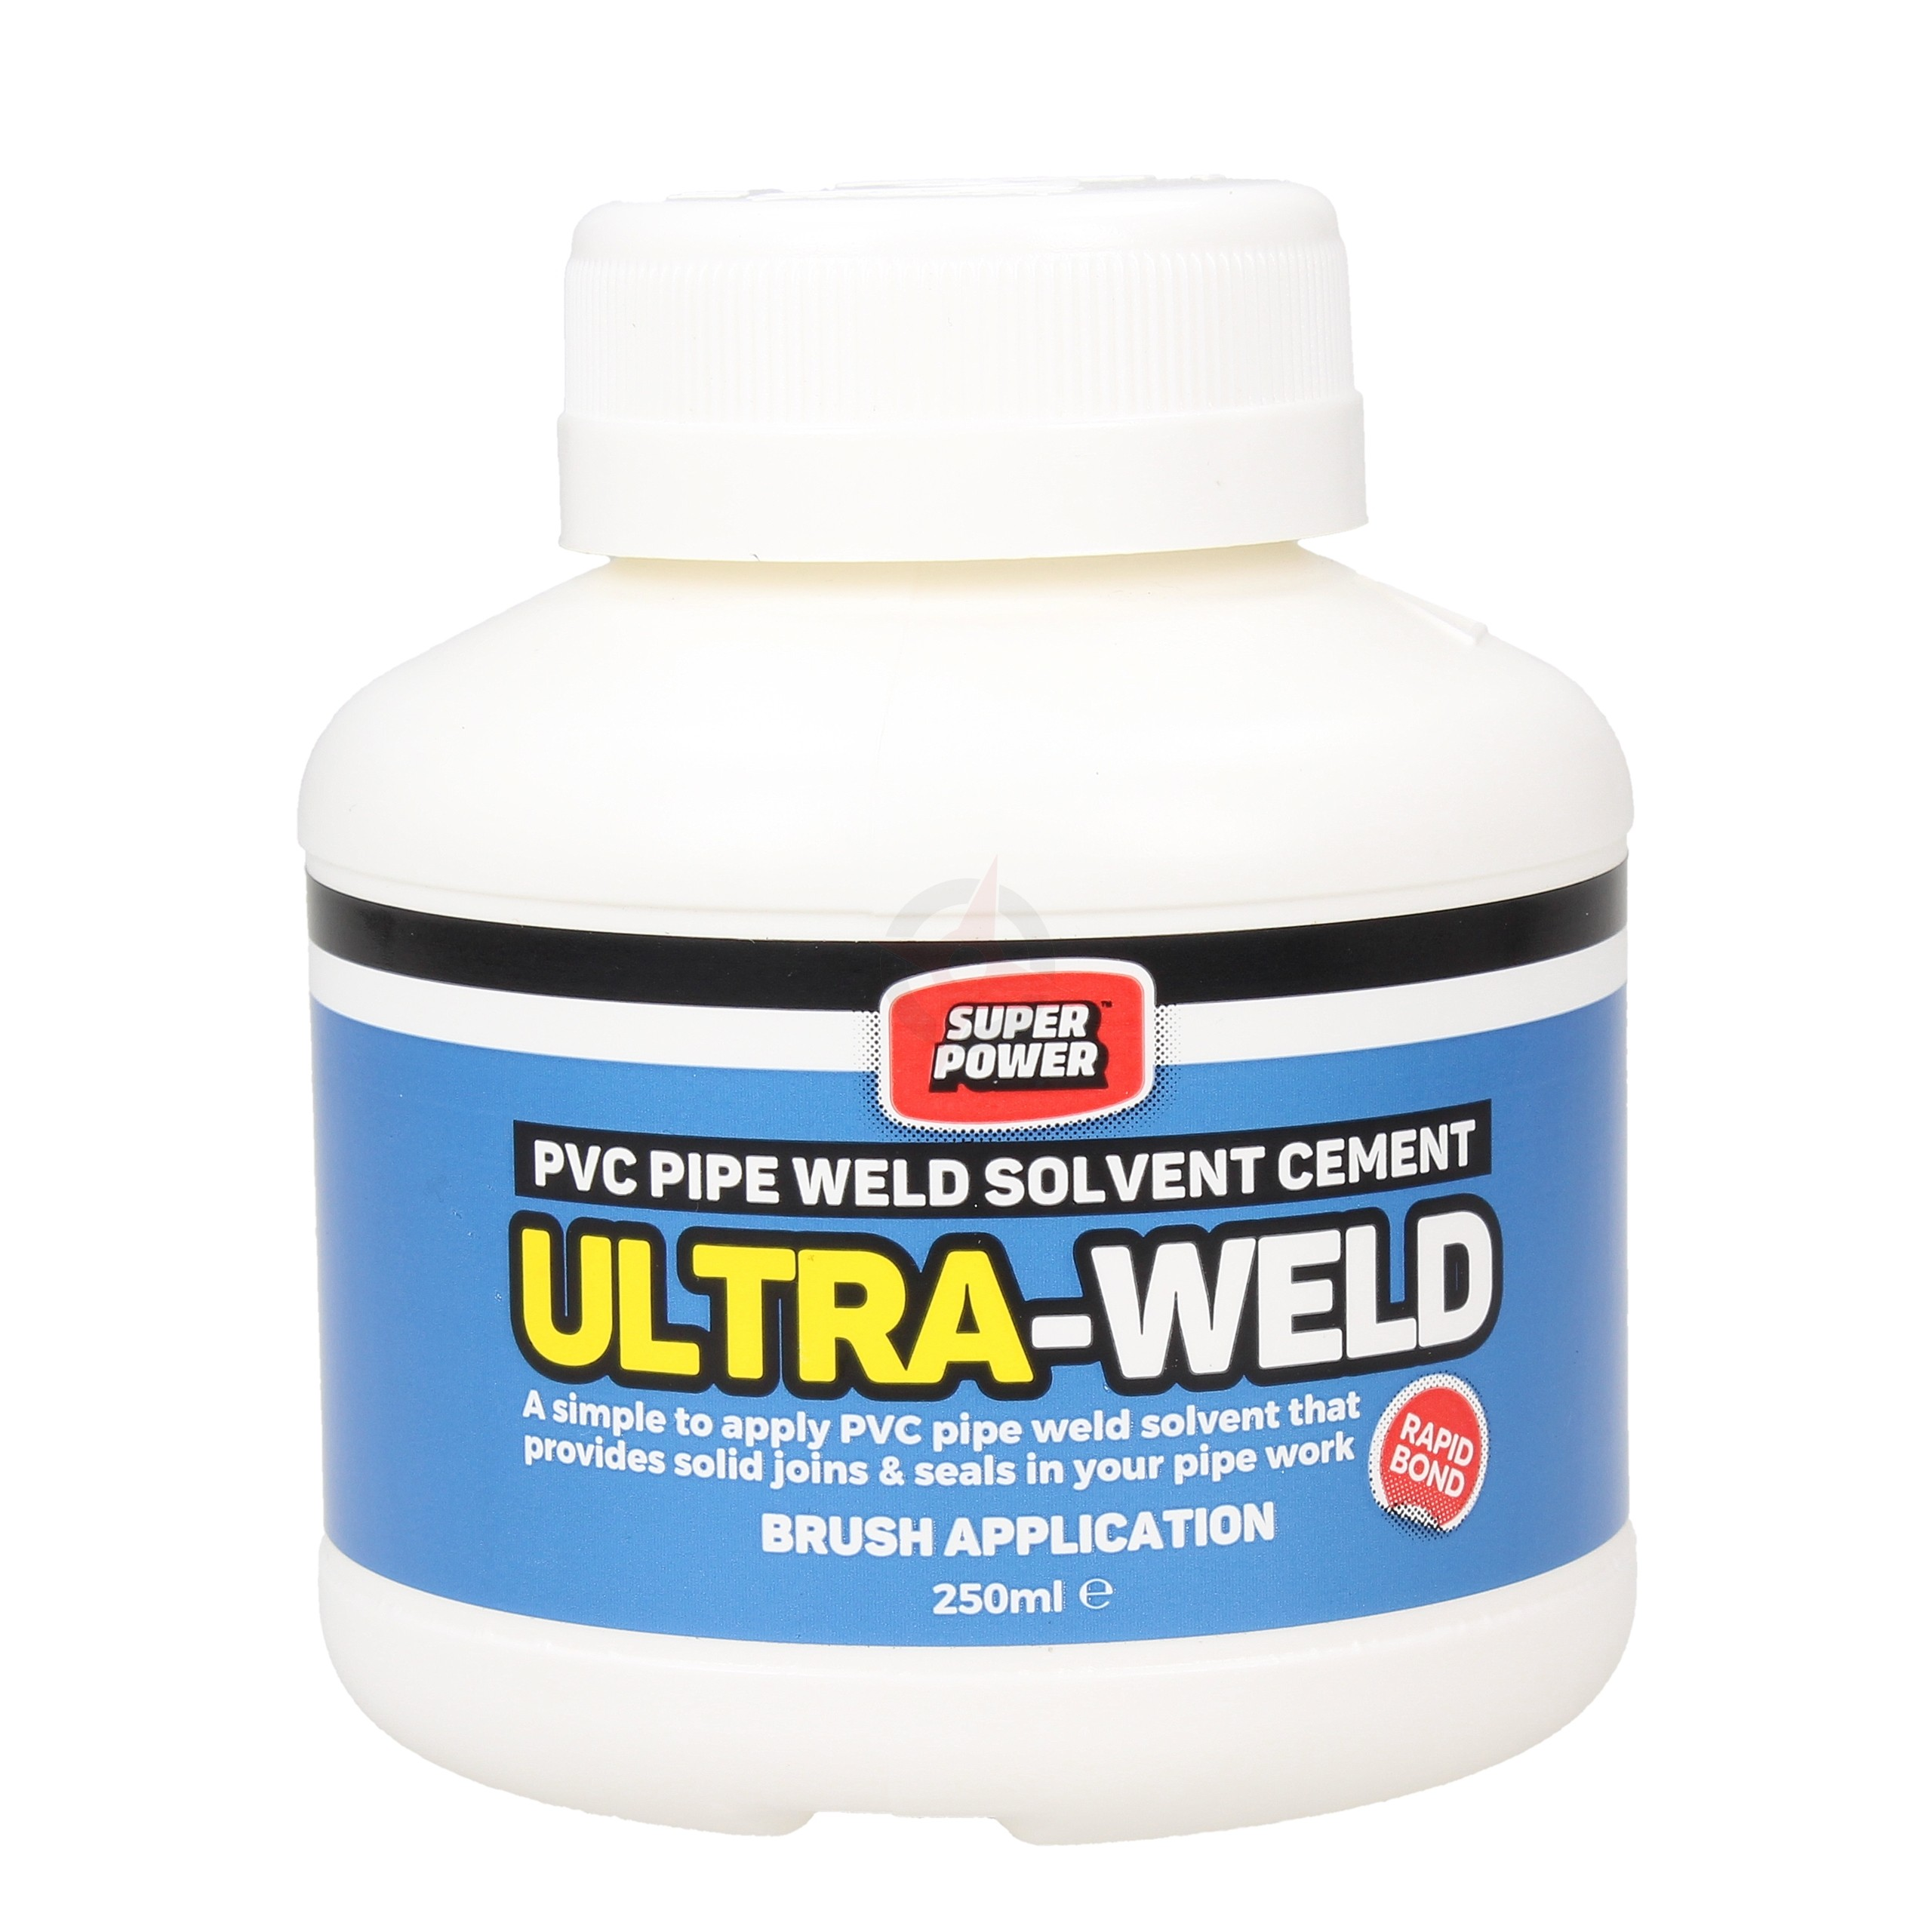 Super Power Ultra-Weld PVC Pipe Weld Solvent Cement - Small 250ml